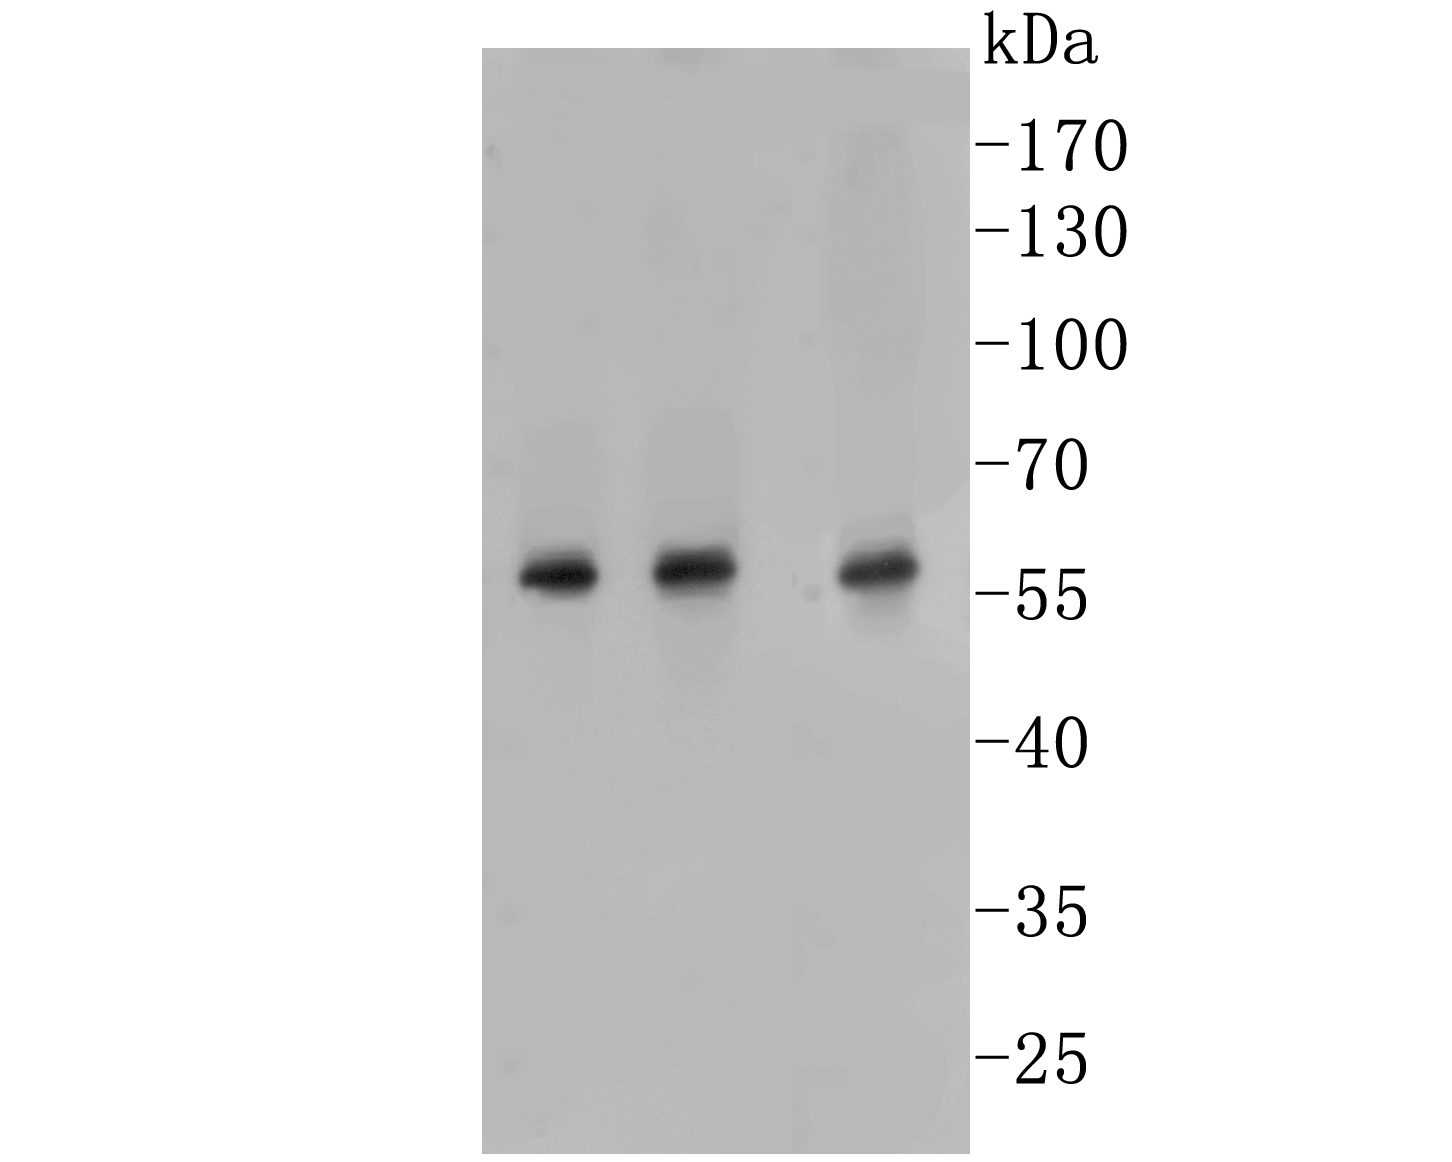 Western blot analysis of PTEN on different lysate. Proteins were transferred to a PVDF membrane and blocked with 5% BSA in PBS for 1 hour at room temperature. The primary antibody (ER1902-27, 1/500) was used in 5% BSA at room temperature for 2 hours. Goat Anti-Rabbit IgG - HRP Secondary Antibody (HA1001) at 1:5,000 dilution was used for 1 hour at room temperature.<br /> Positive control:<br /> Lane 1: THP-1 cell lysate<br /> Lane 2: Mouse lung tissue lysate<br /> Lane 3: A431 cell lysate